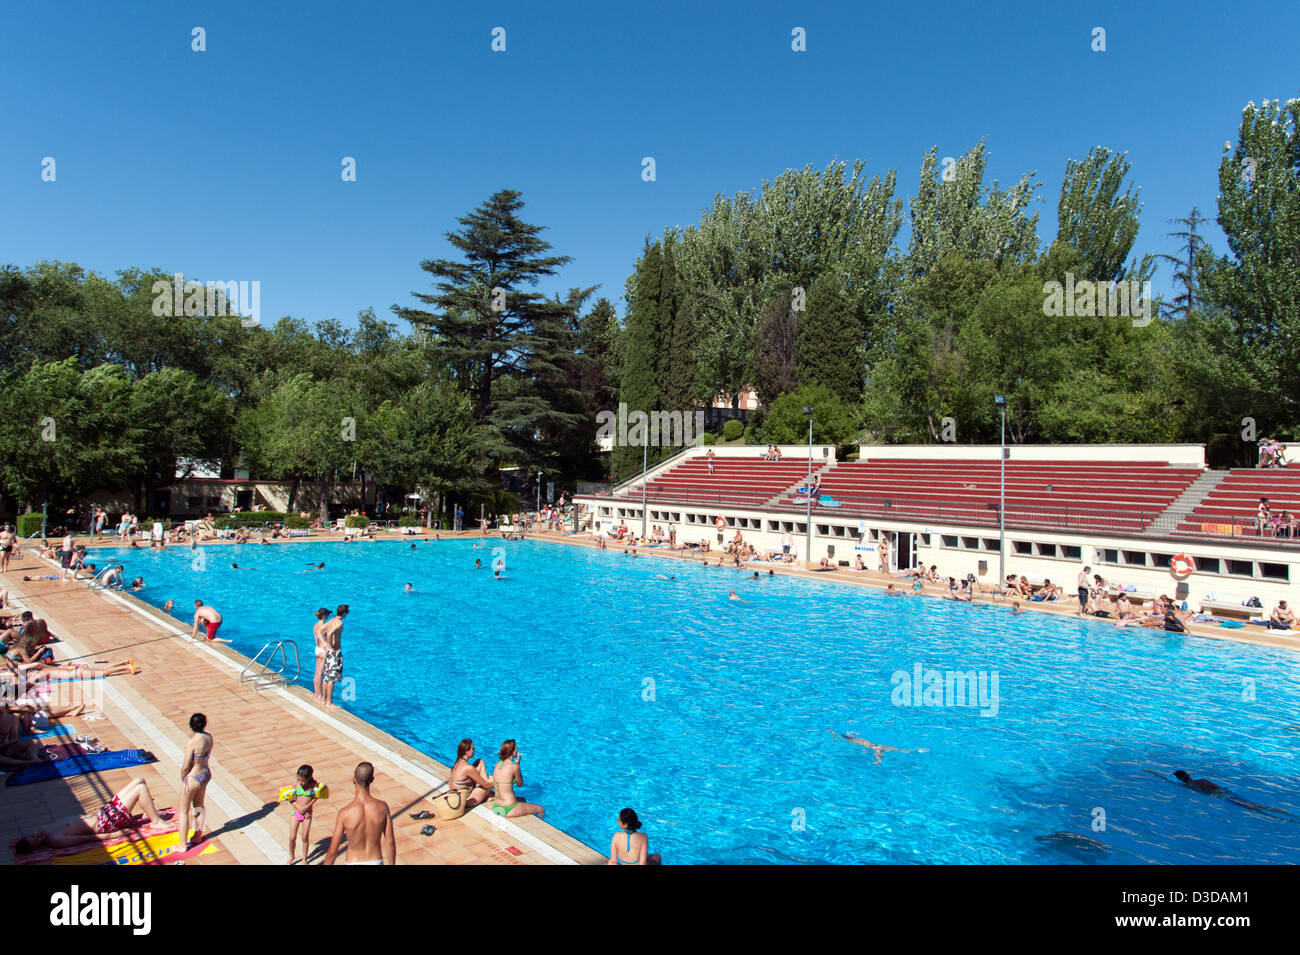 Open air swimming pool stock photos open air swimming - Hotels in madrid spain with swimming pool ...